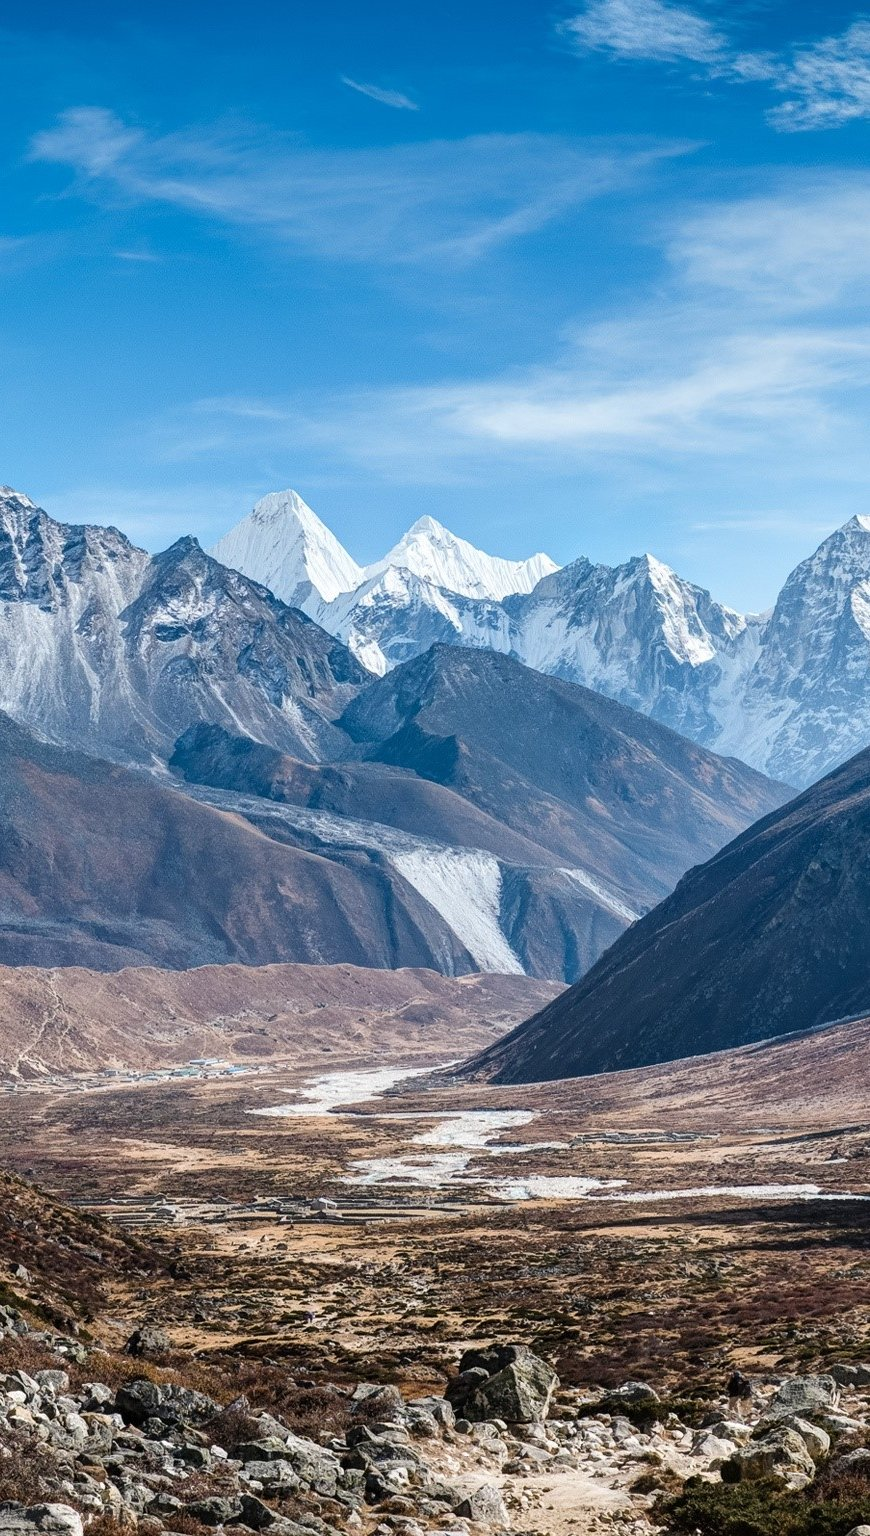 Wallpaper Ama Dablam mountains in the Himalayas Vertical